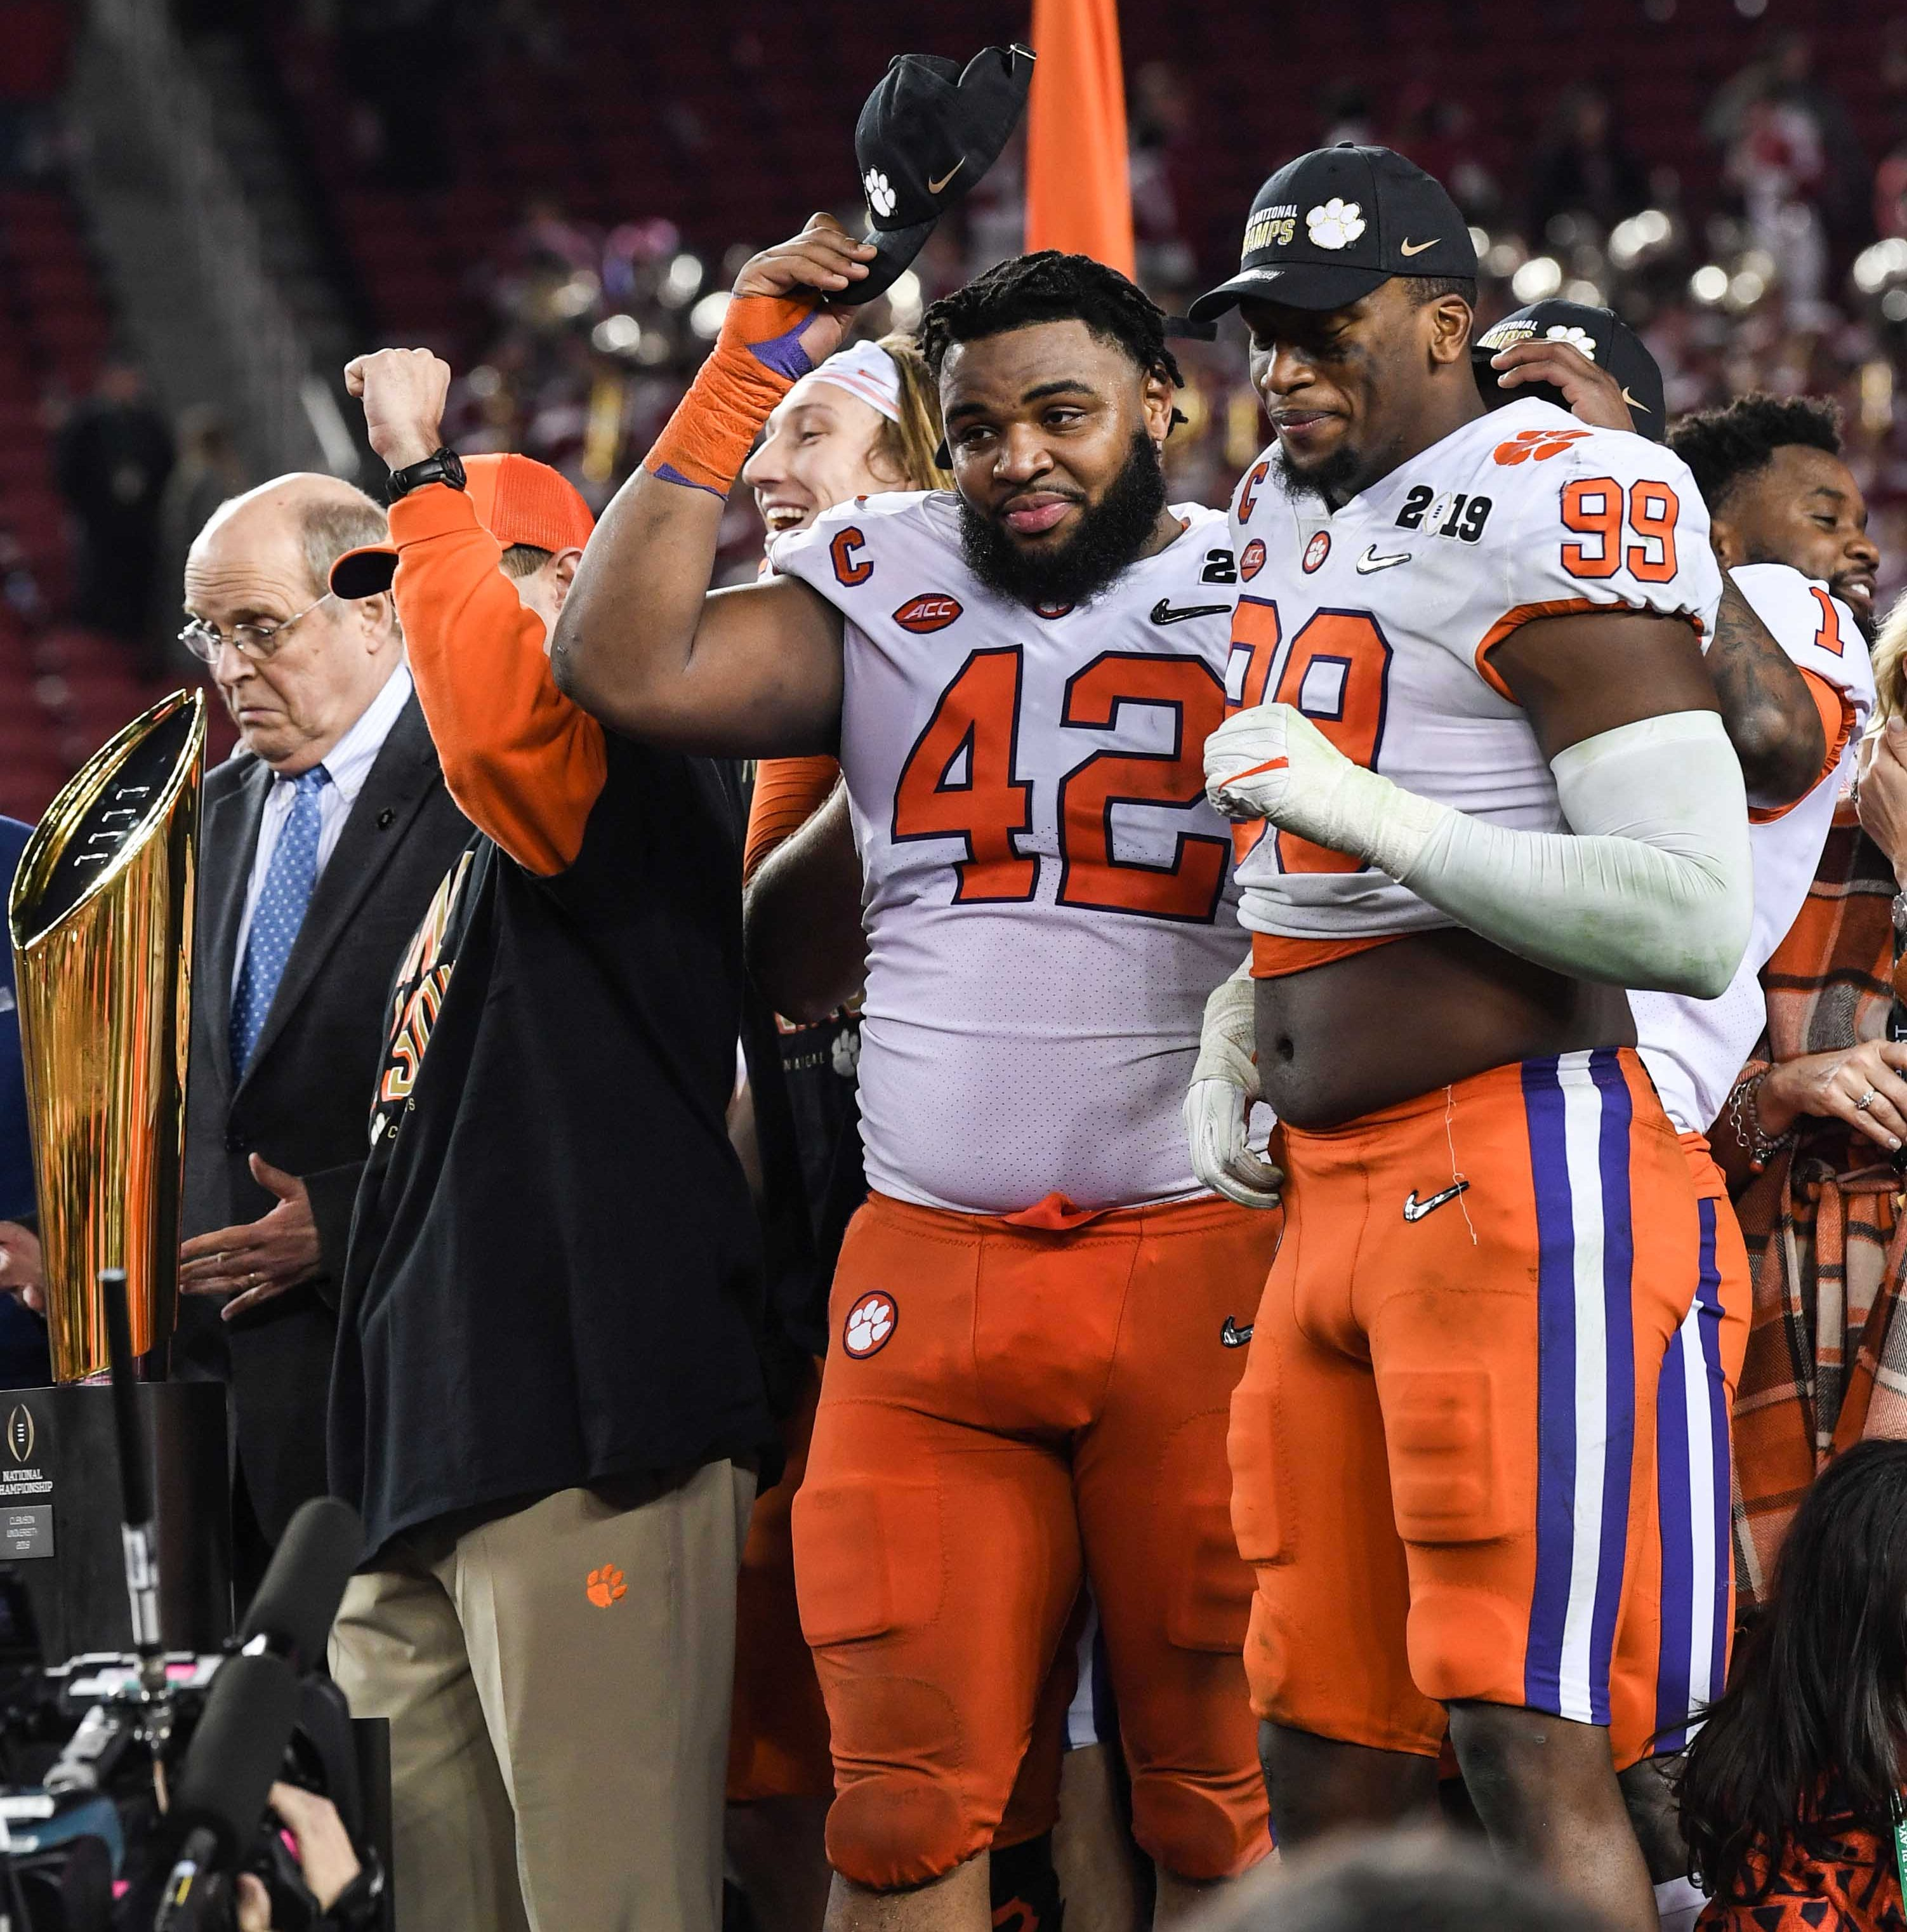 A Clemson thank-you to the orange-clad Power Ranger